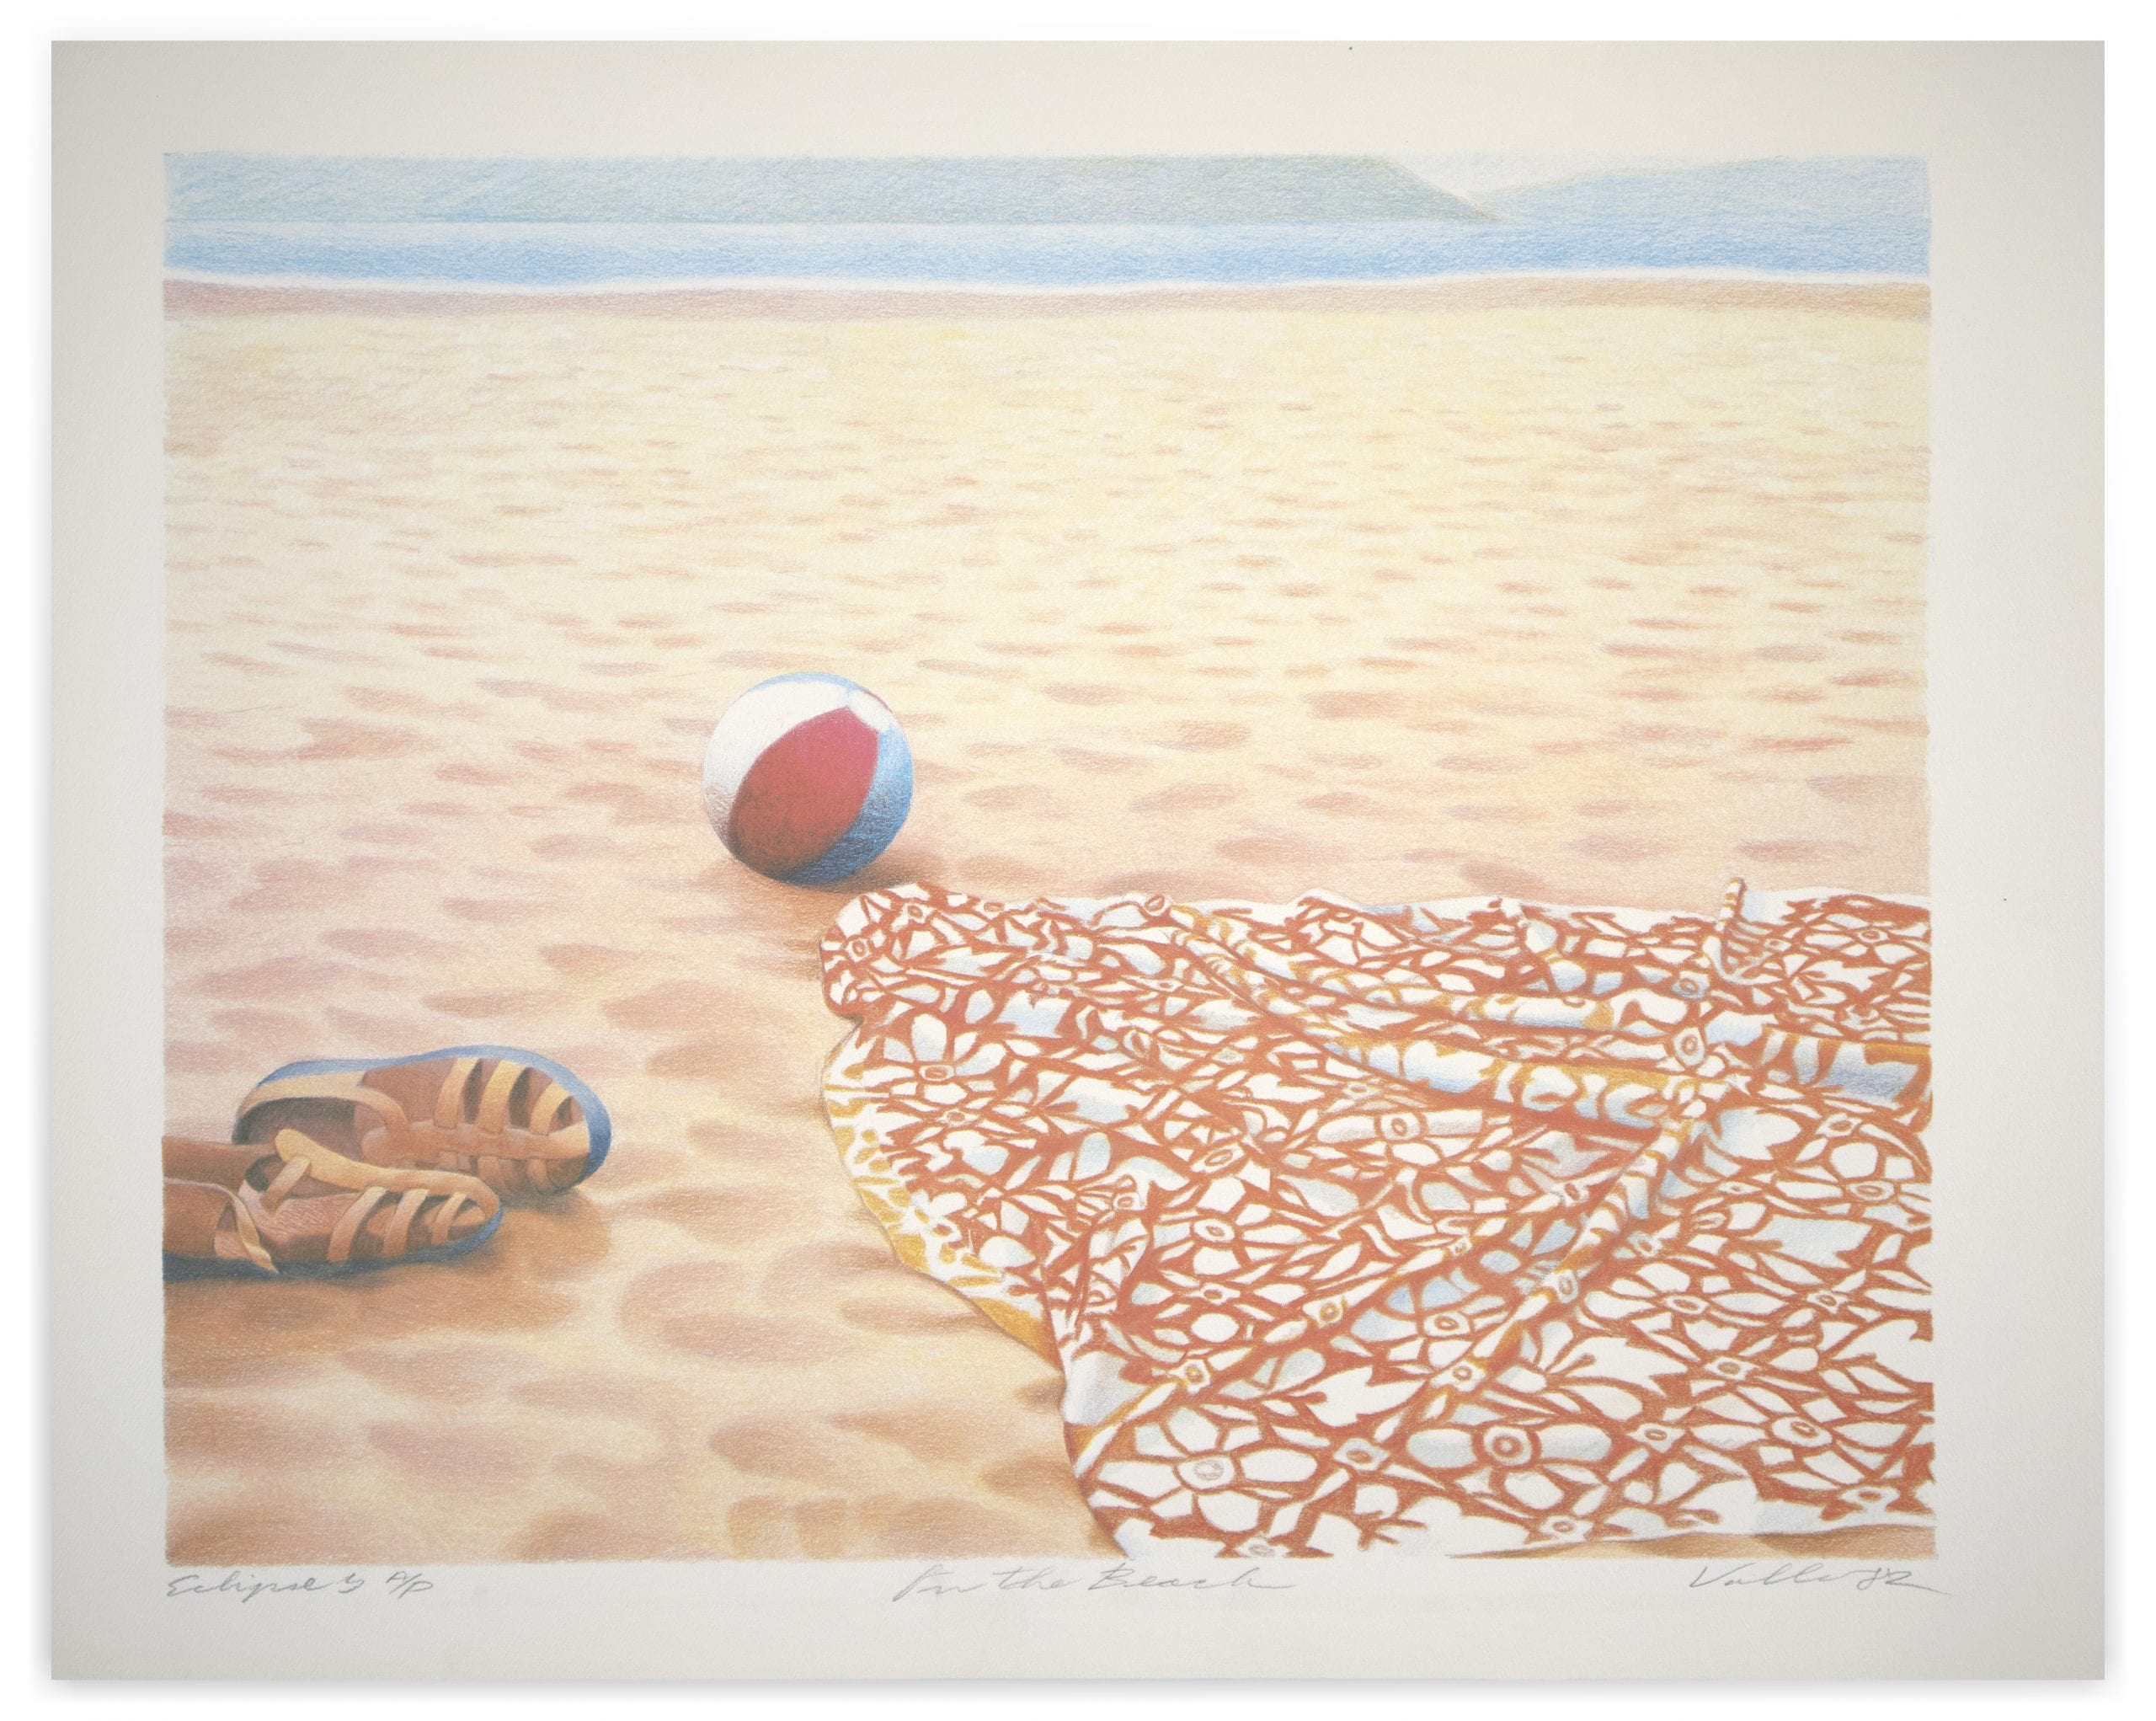 For the Beach - Andrew Valko Image 3